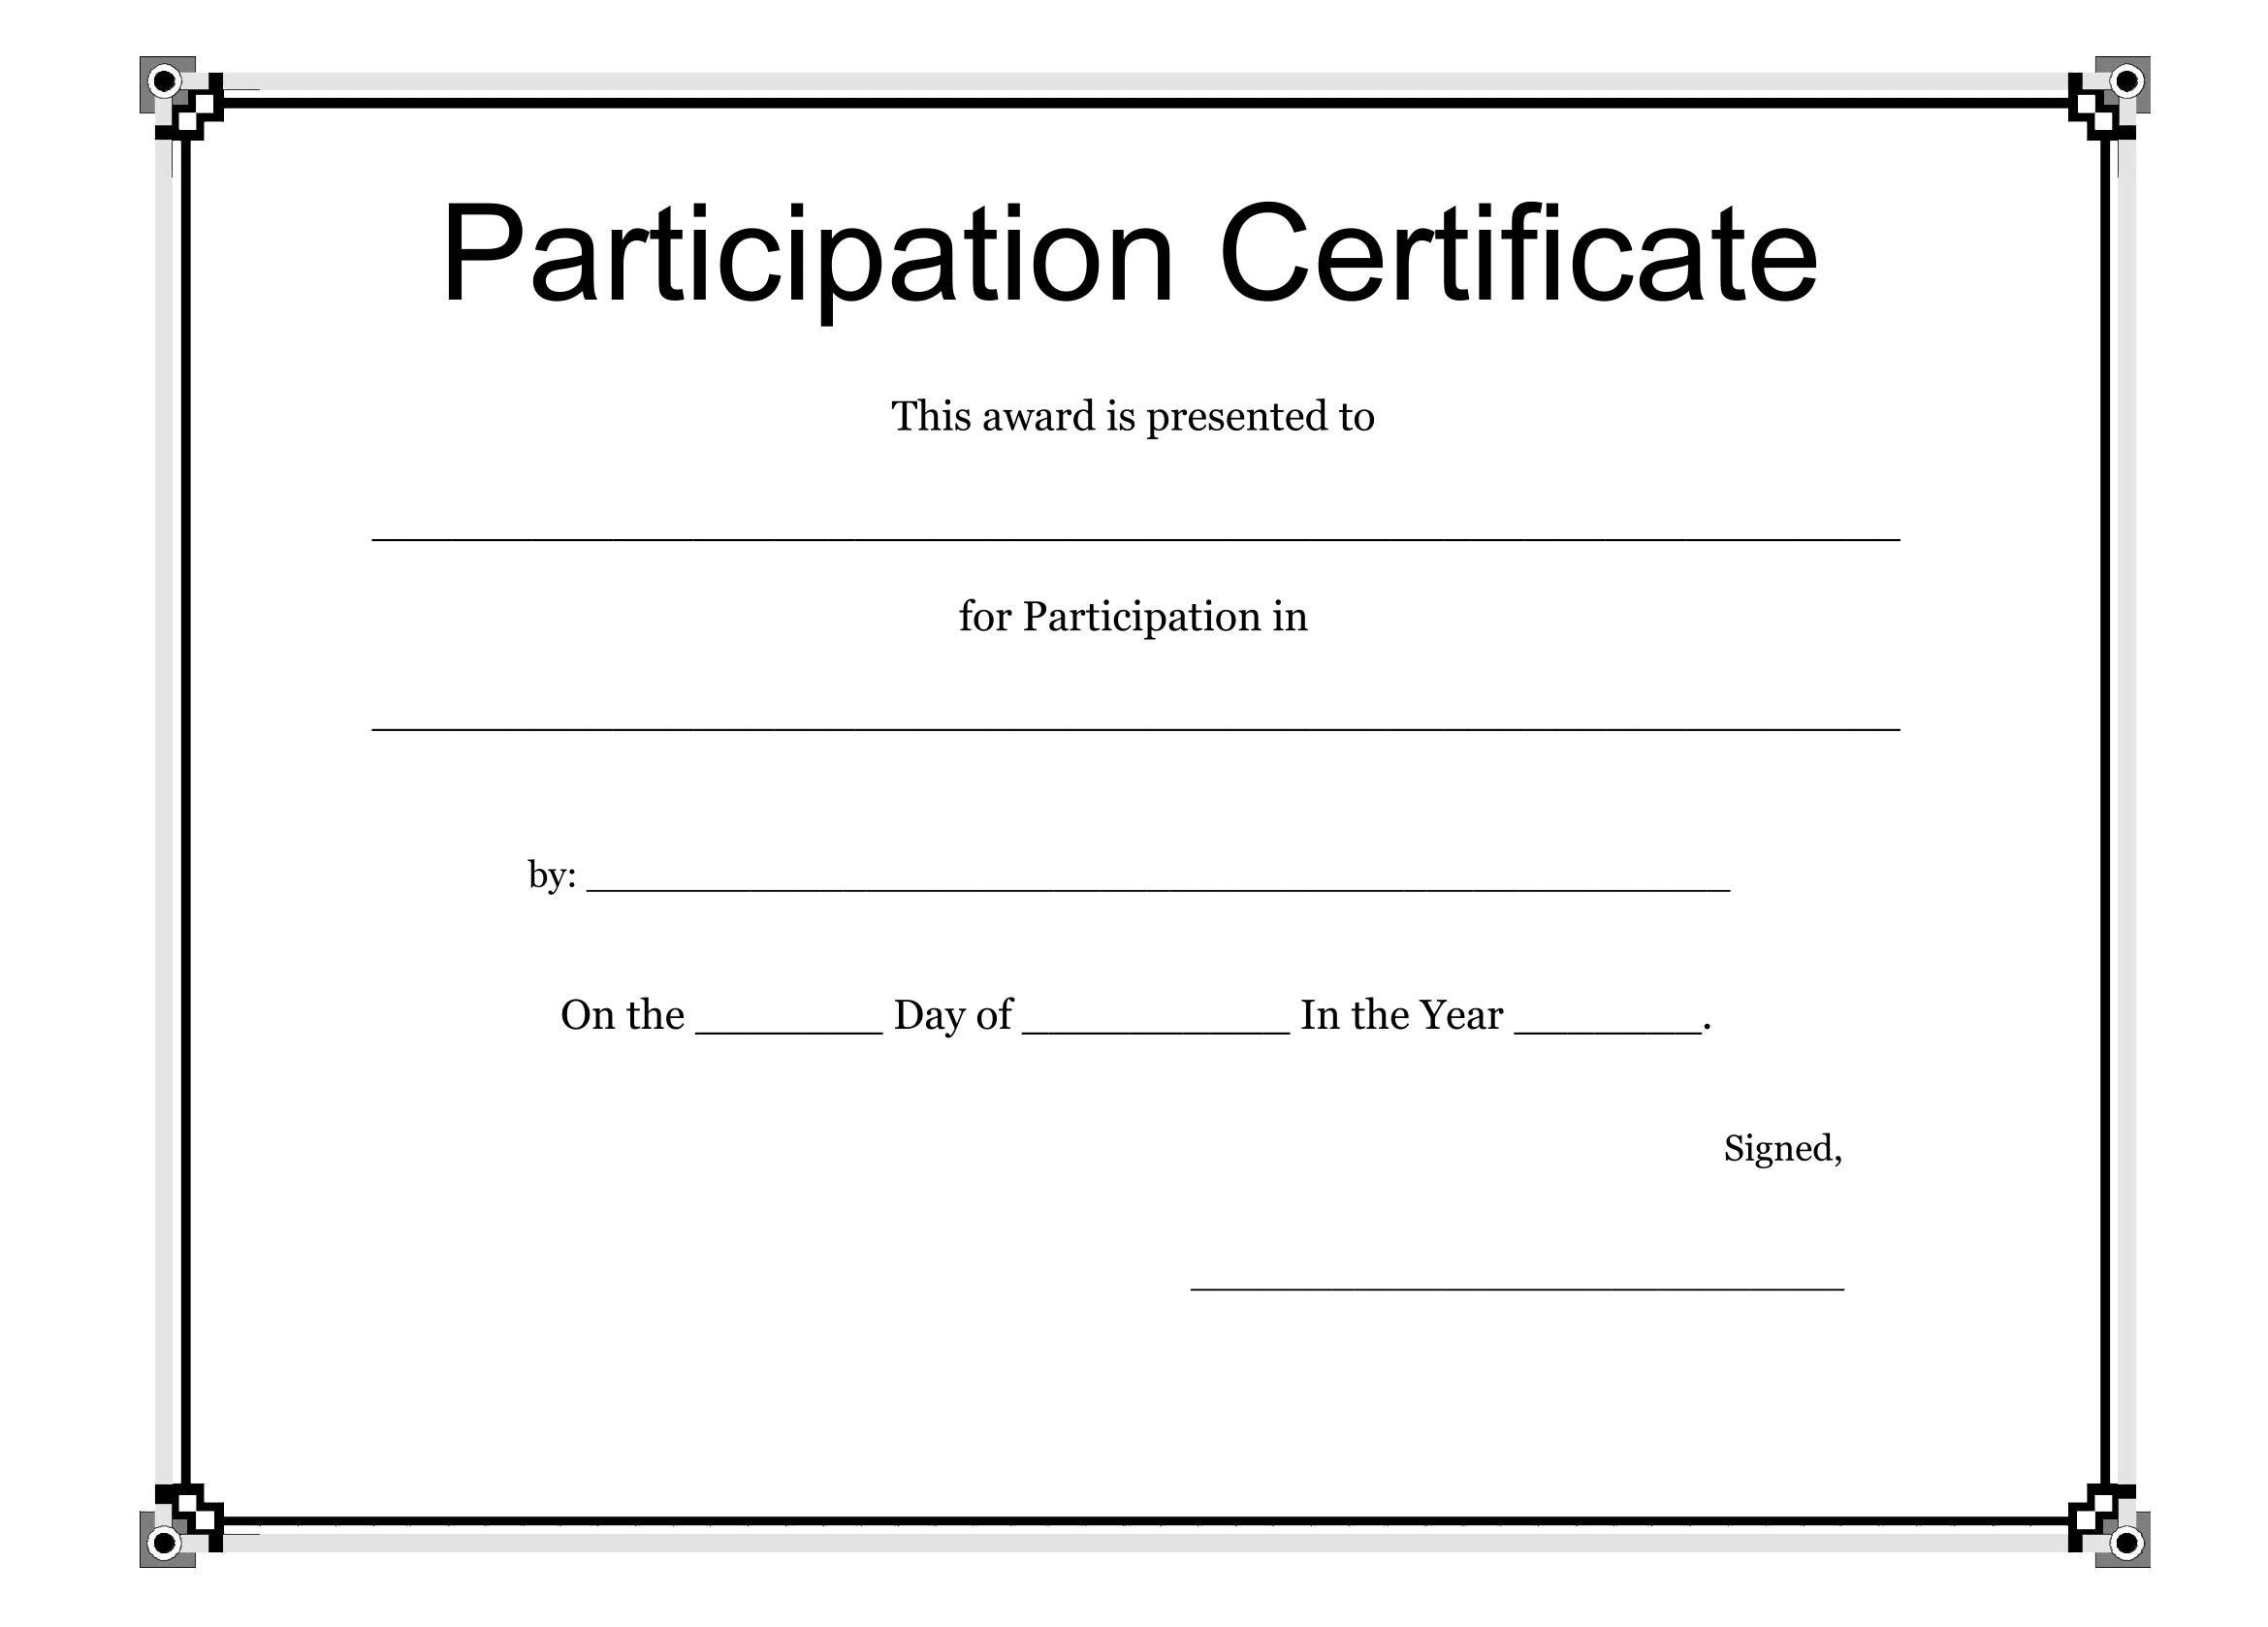 Participation certificate template free download for Certificate templates for word free downloads